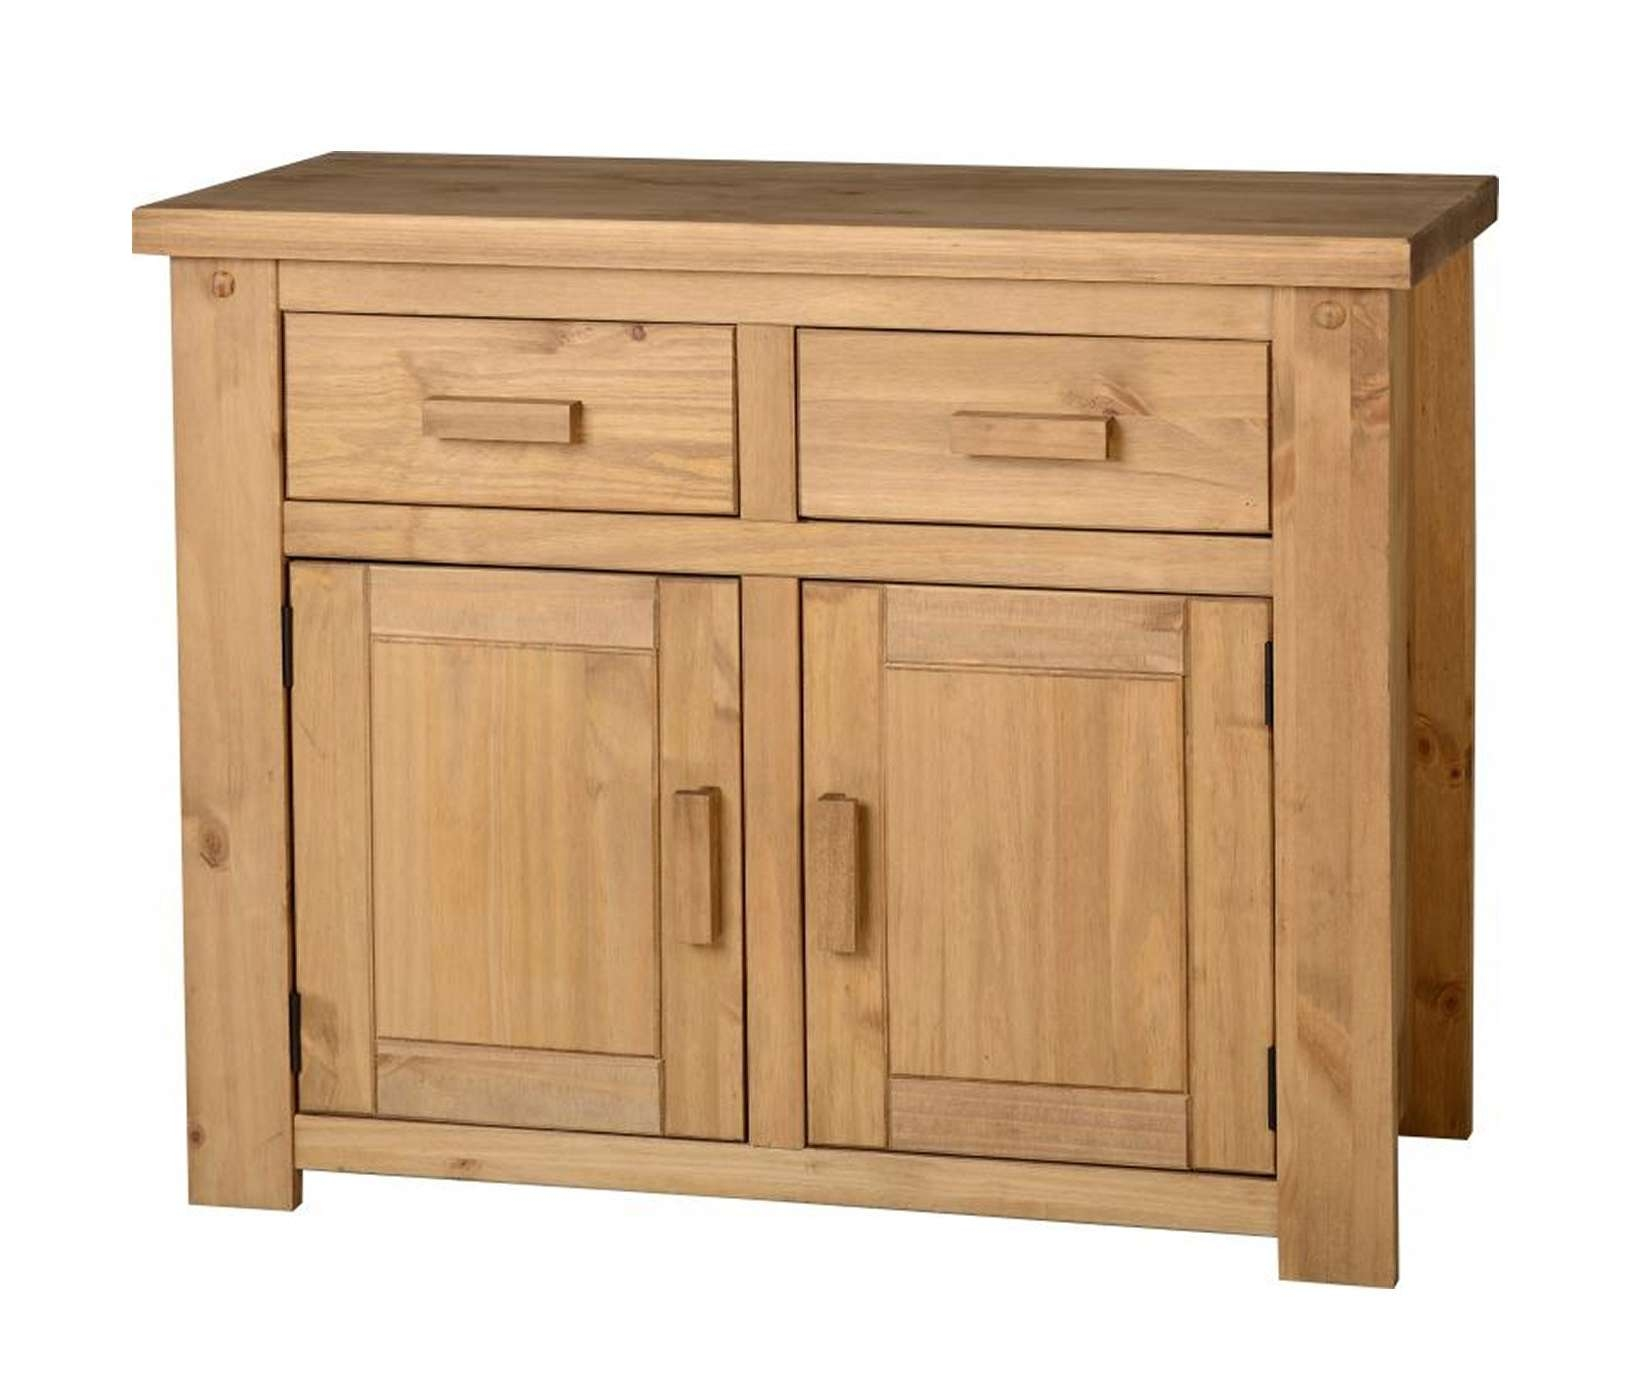 Buy Dark Wood Sideboards From Furniture Direct Uk In Small Dark Wood Sideboards (View 11 of 20)